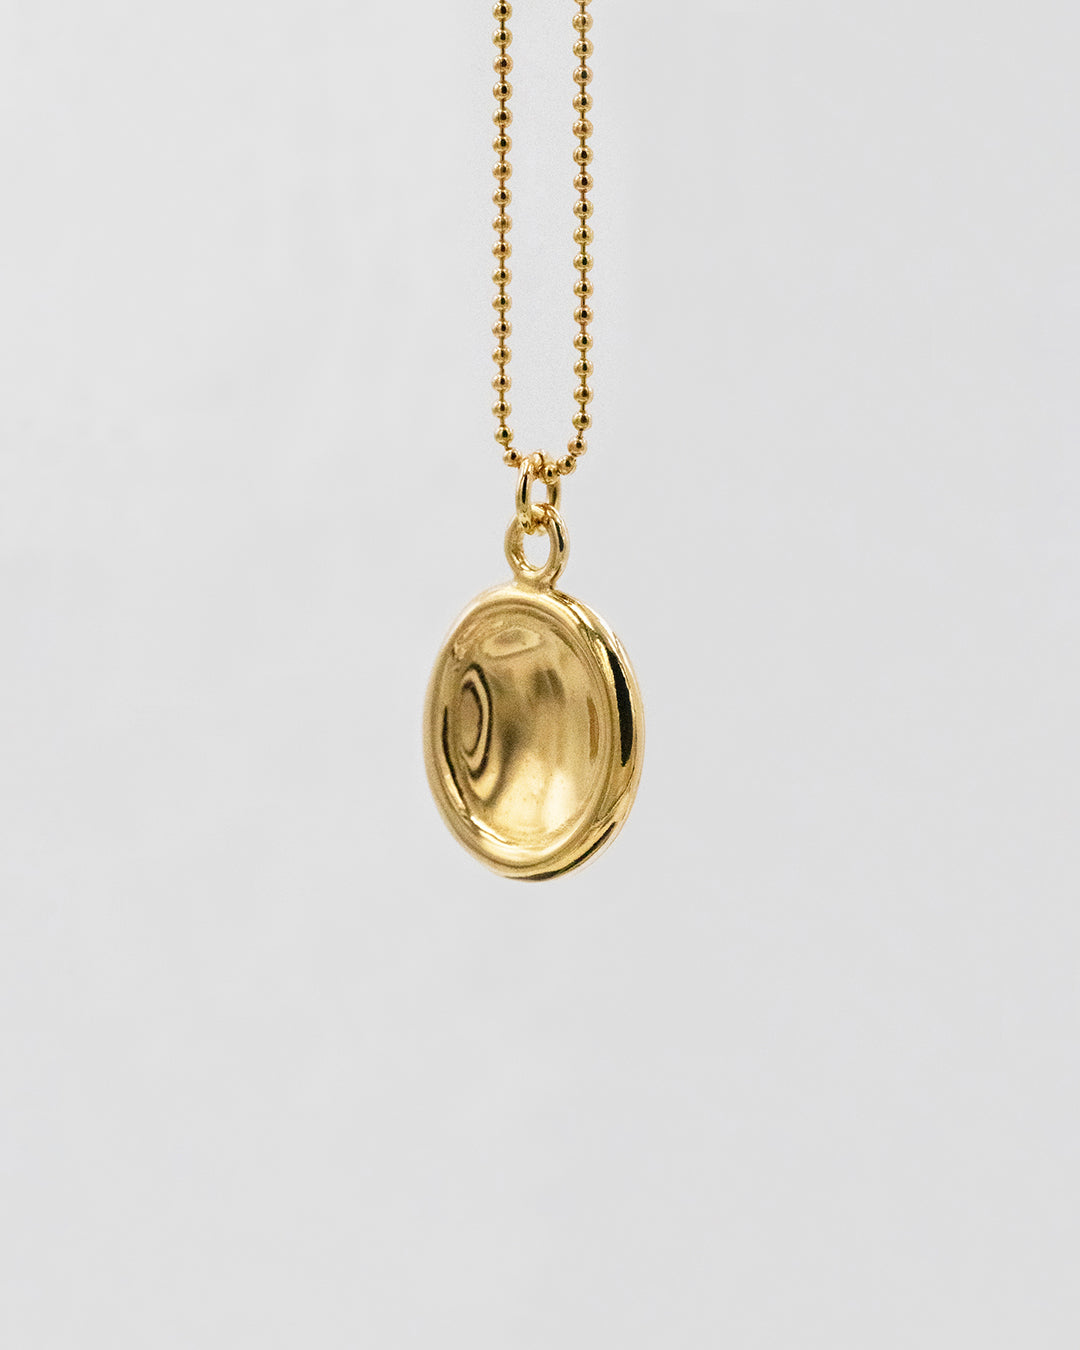 IDAMARI Eyja Necklace in 18k Gold Plated Sterling Silver